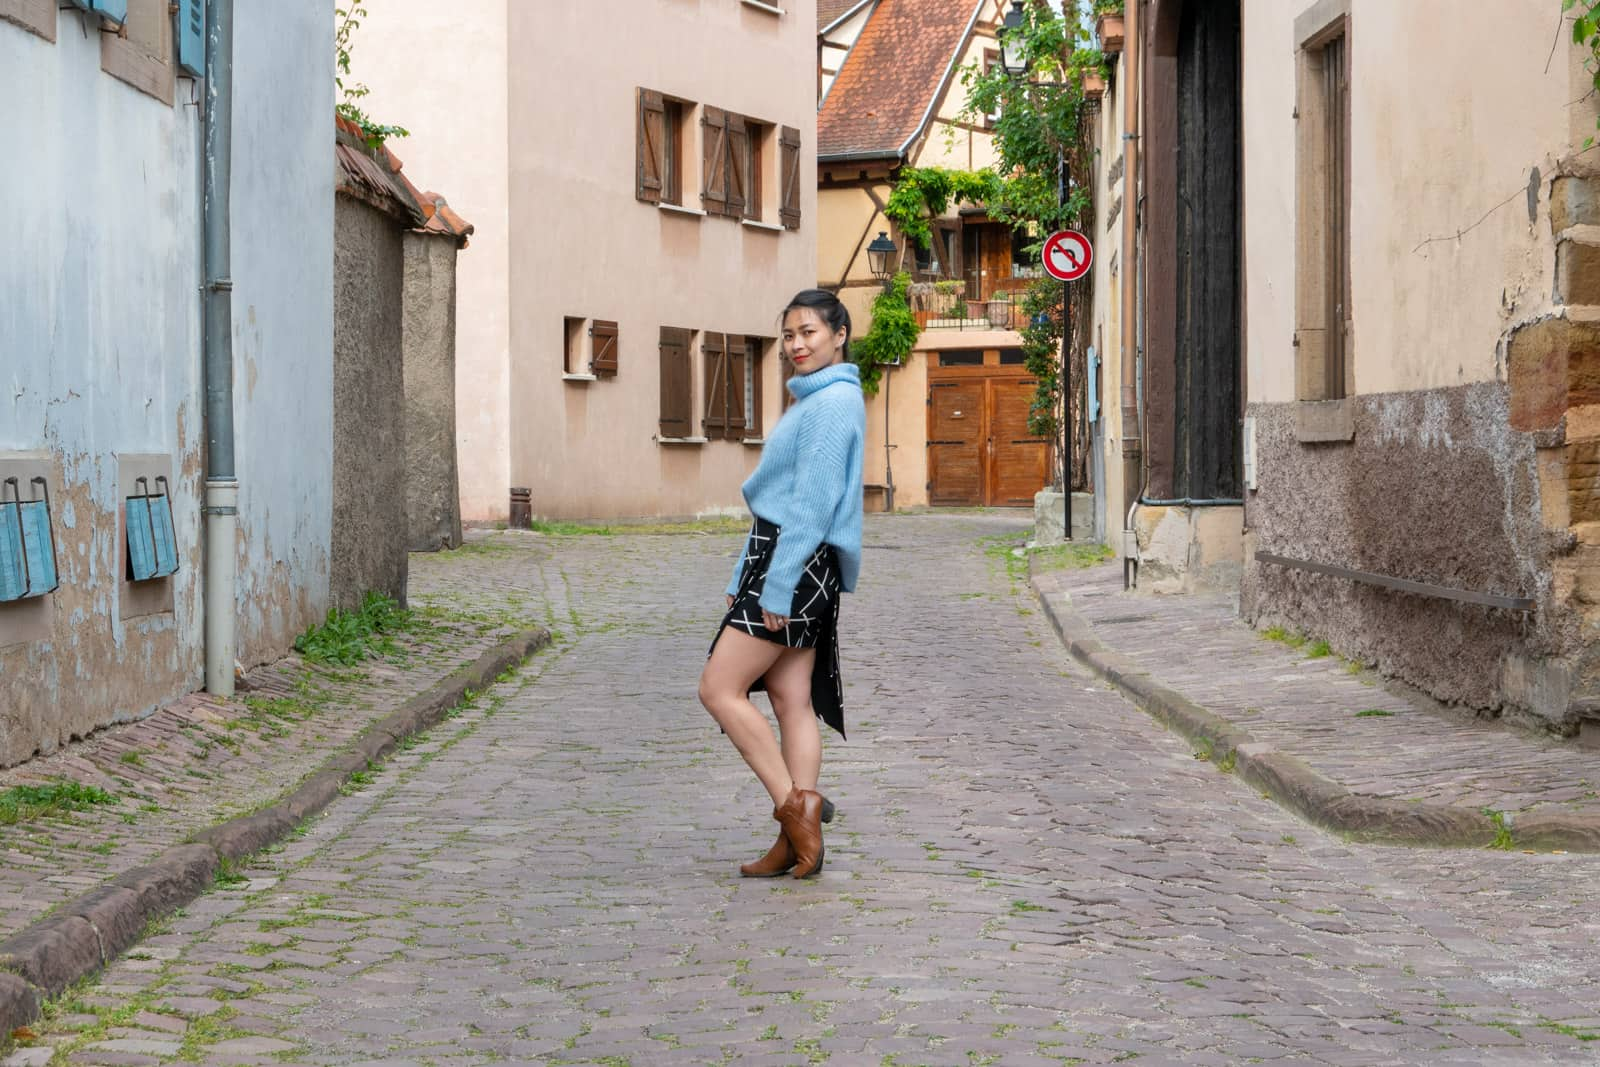 The same woman in other photos on this page, dressed in the same clothes. She is standing side-on, leaning back into her hip with one knee bent. She is in the middle of a quiet cobblestone road.